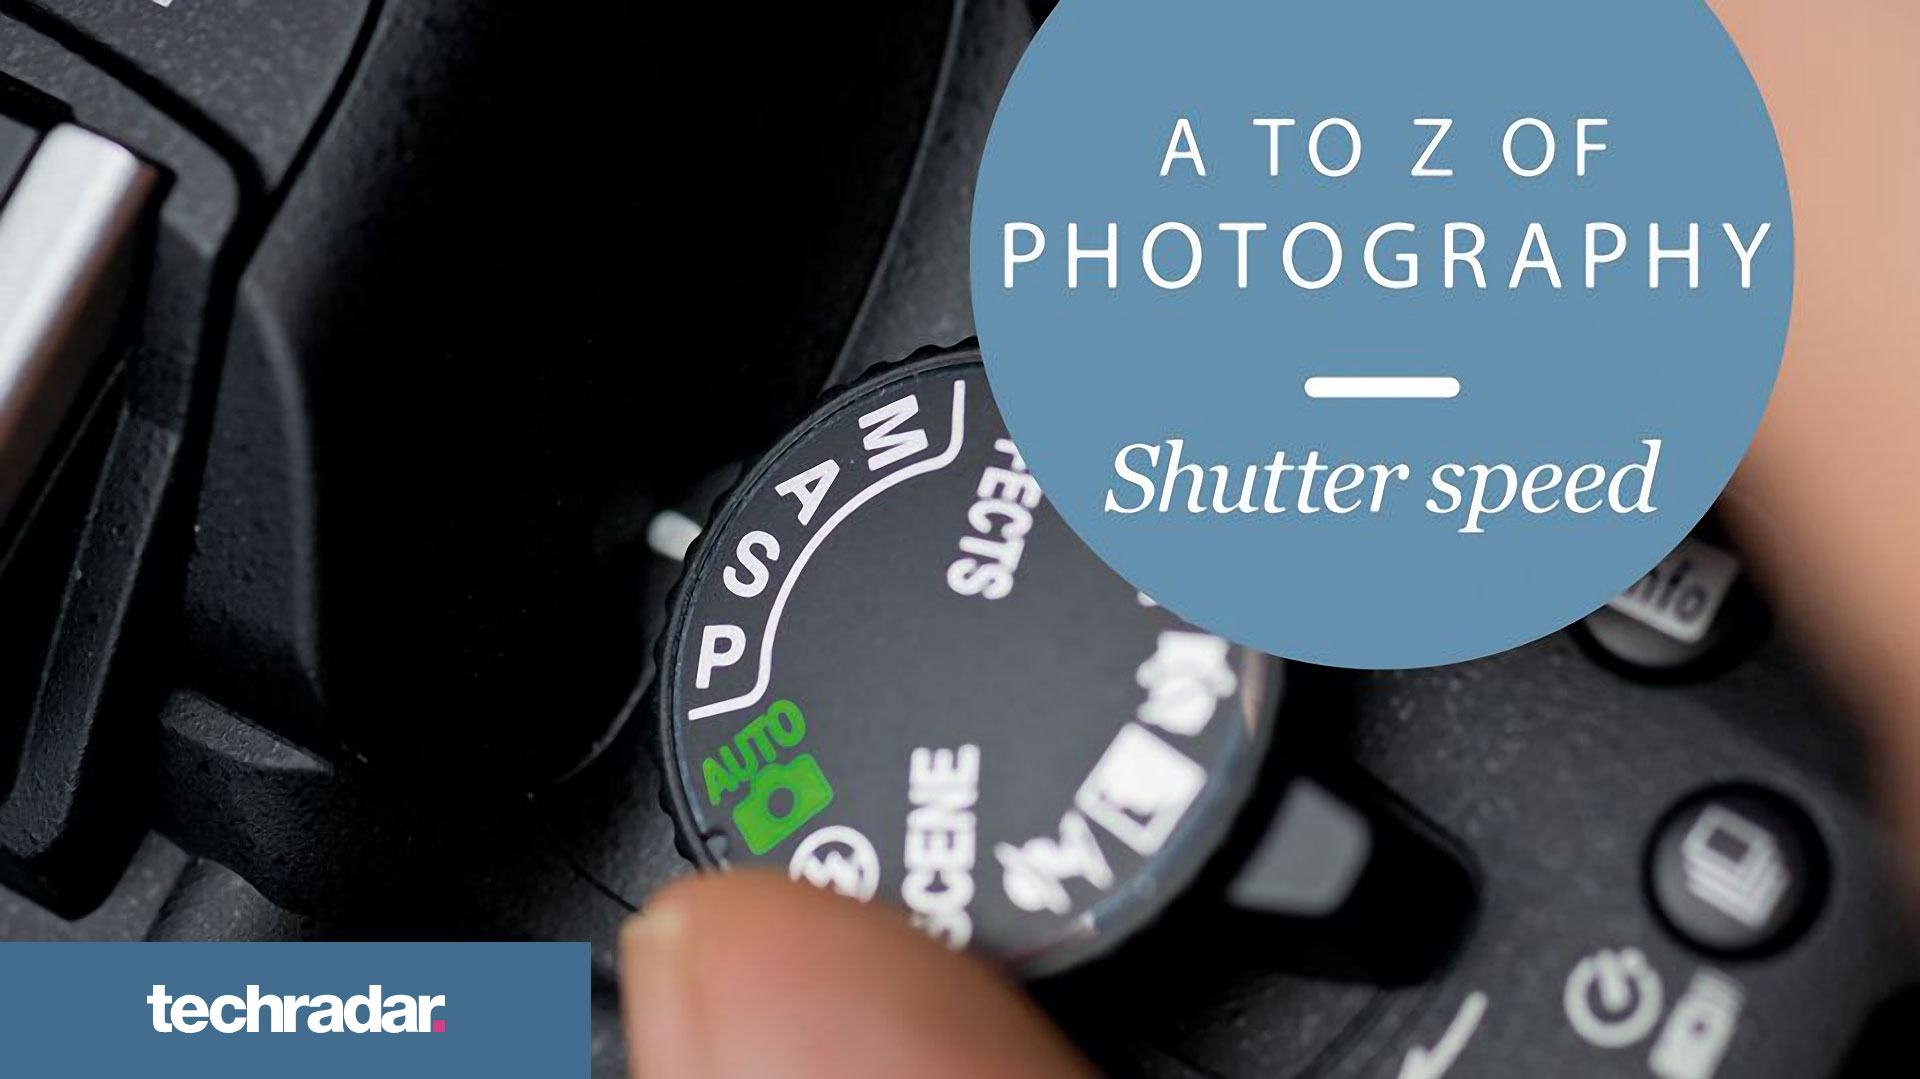 The A to Z of Photography: Shutter speed